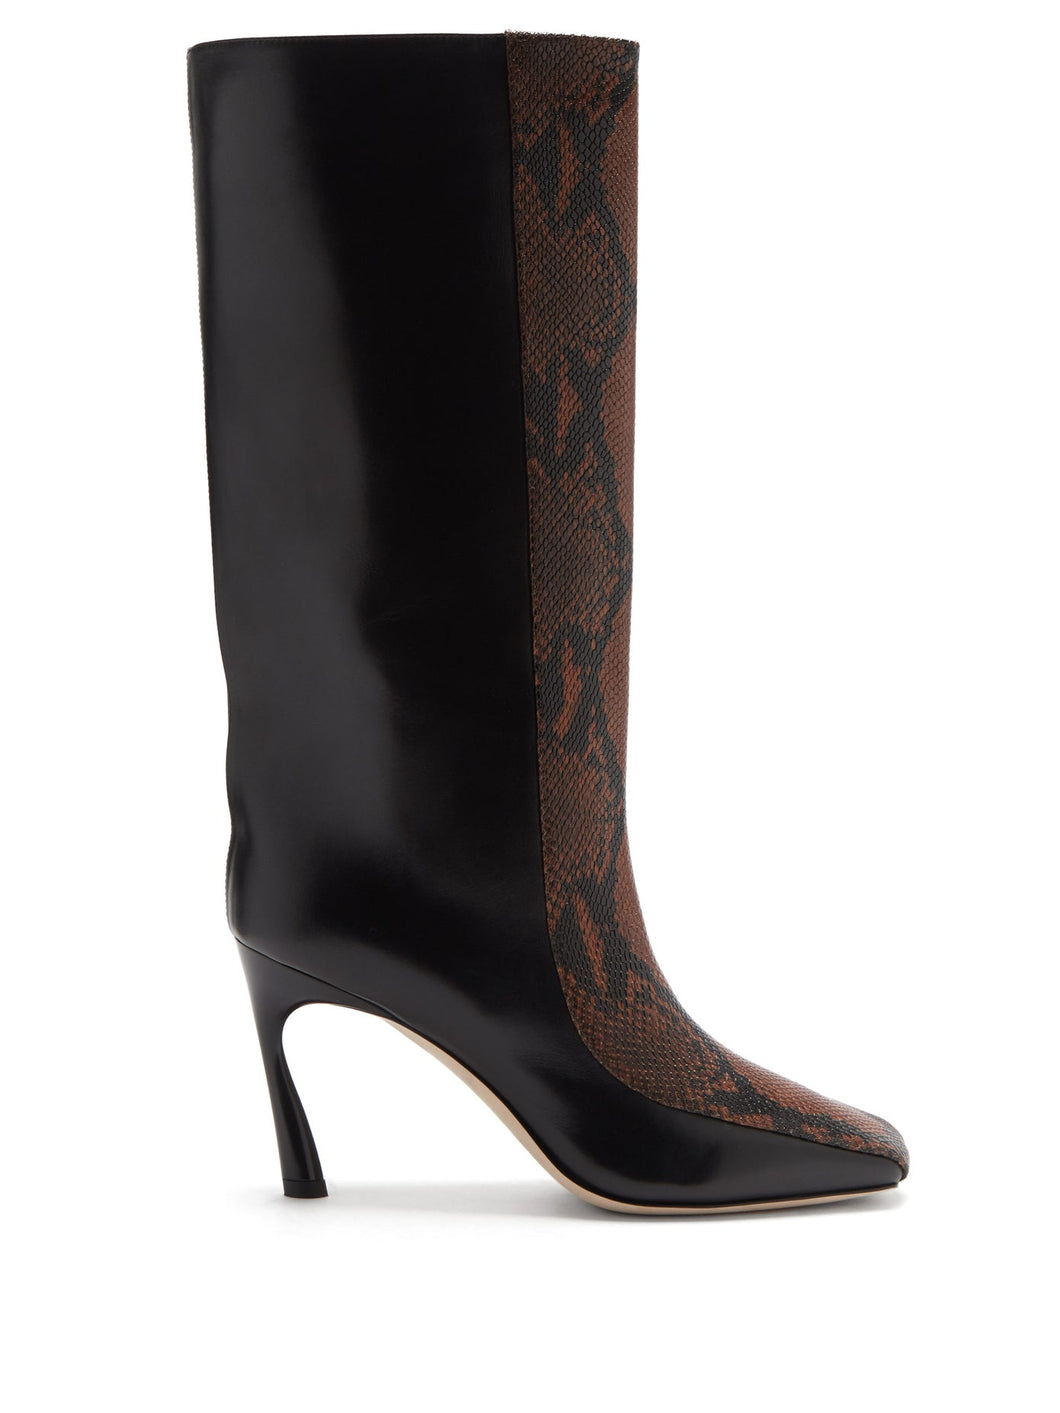 Mabyn 85 snake-effect leather knee-high boots